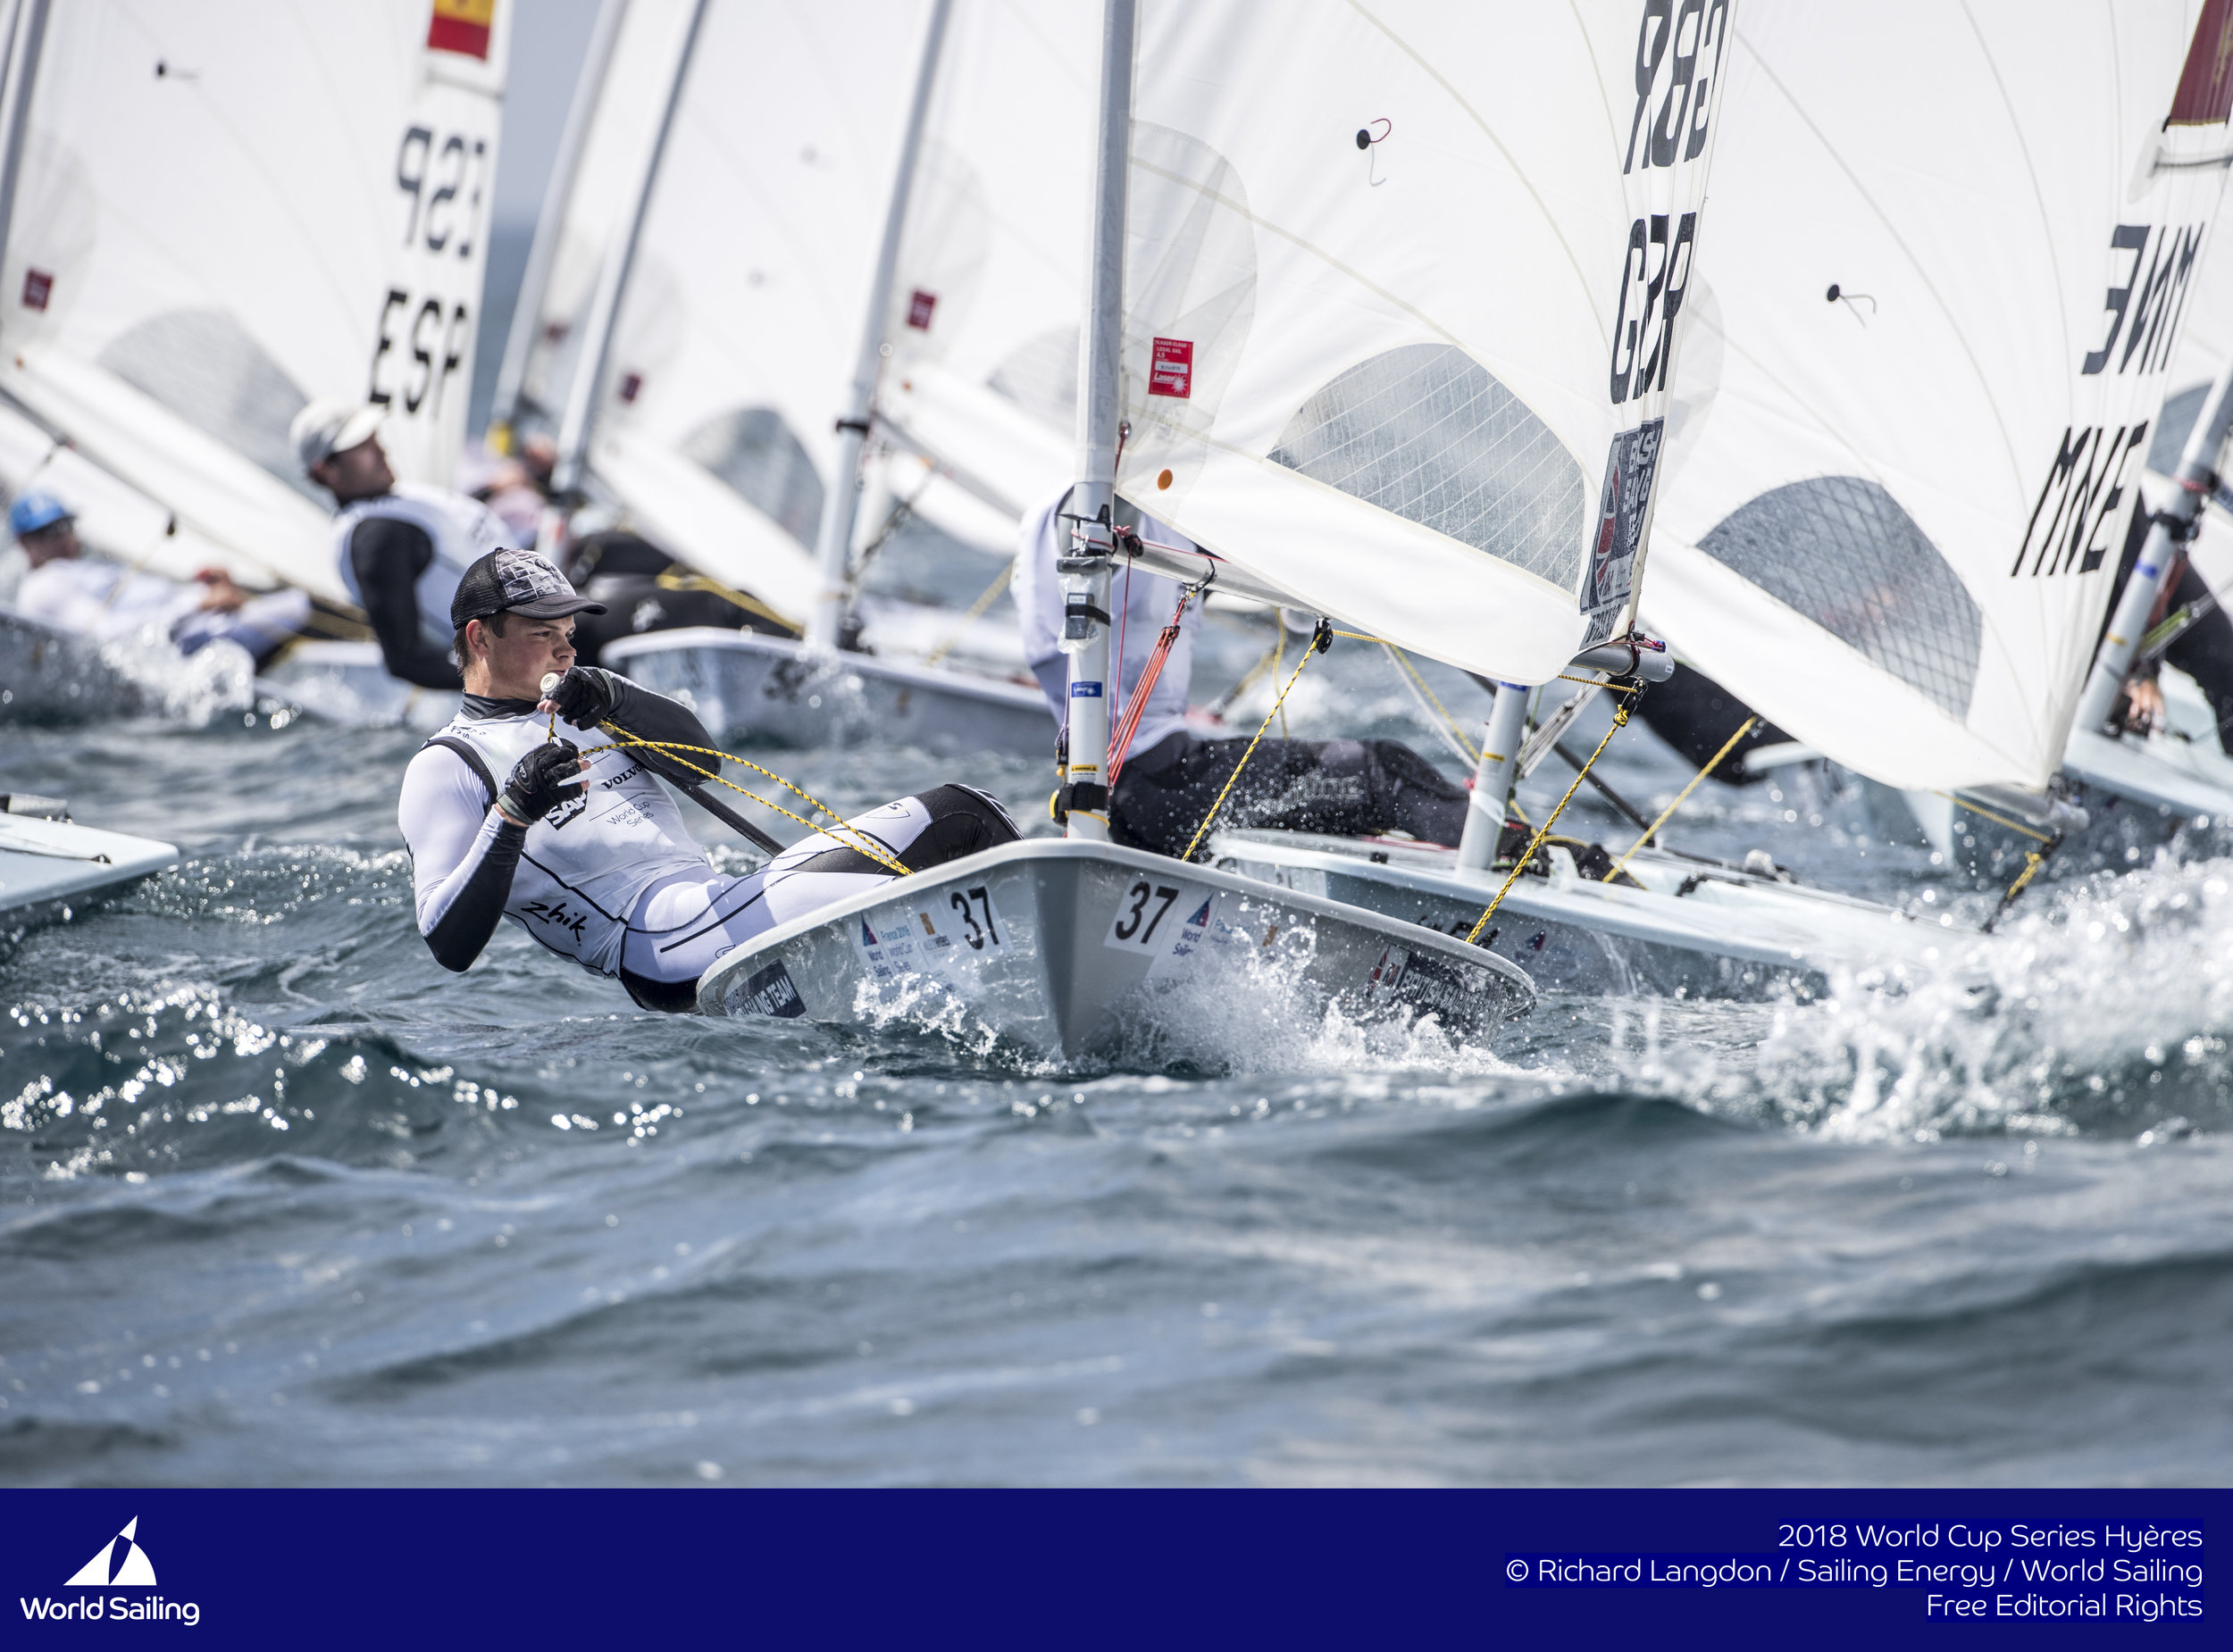 After day one I was lying in 8th overall - not bad for my first ever world cup!